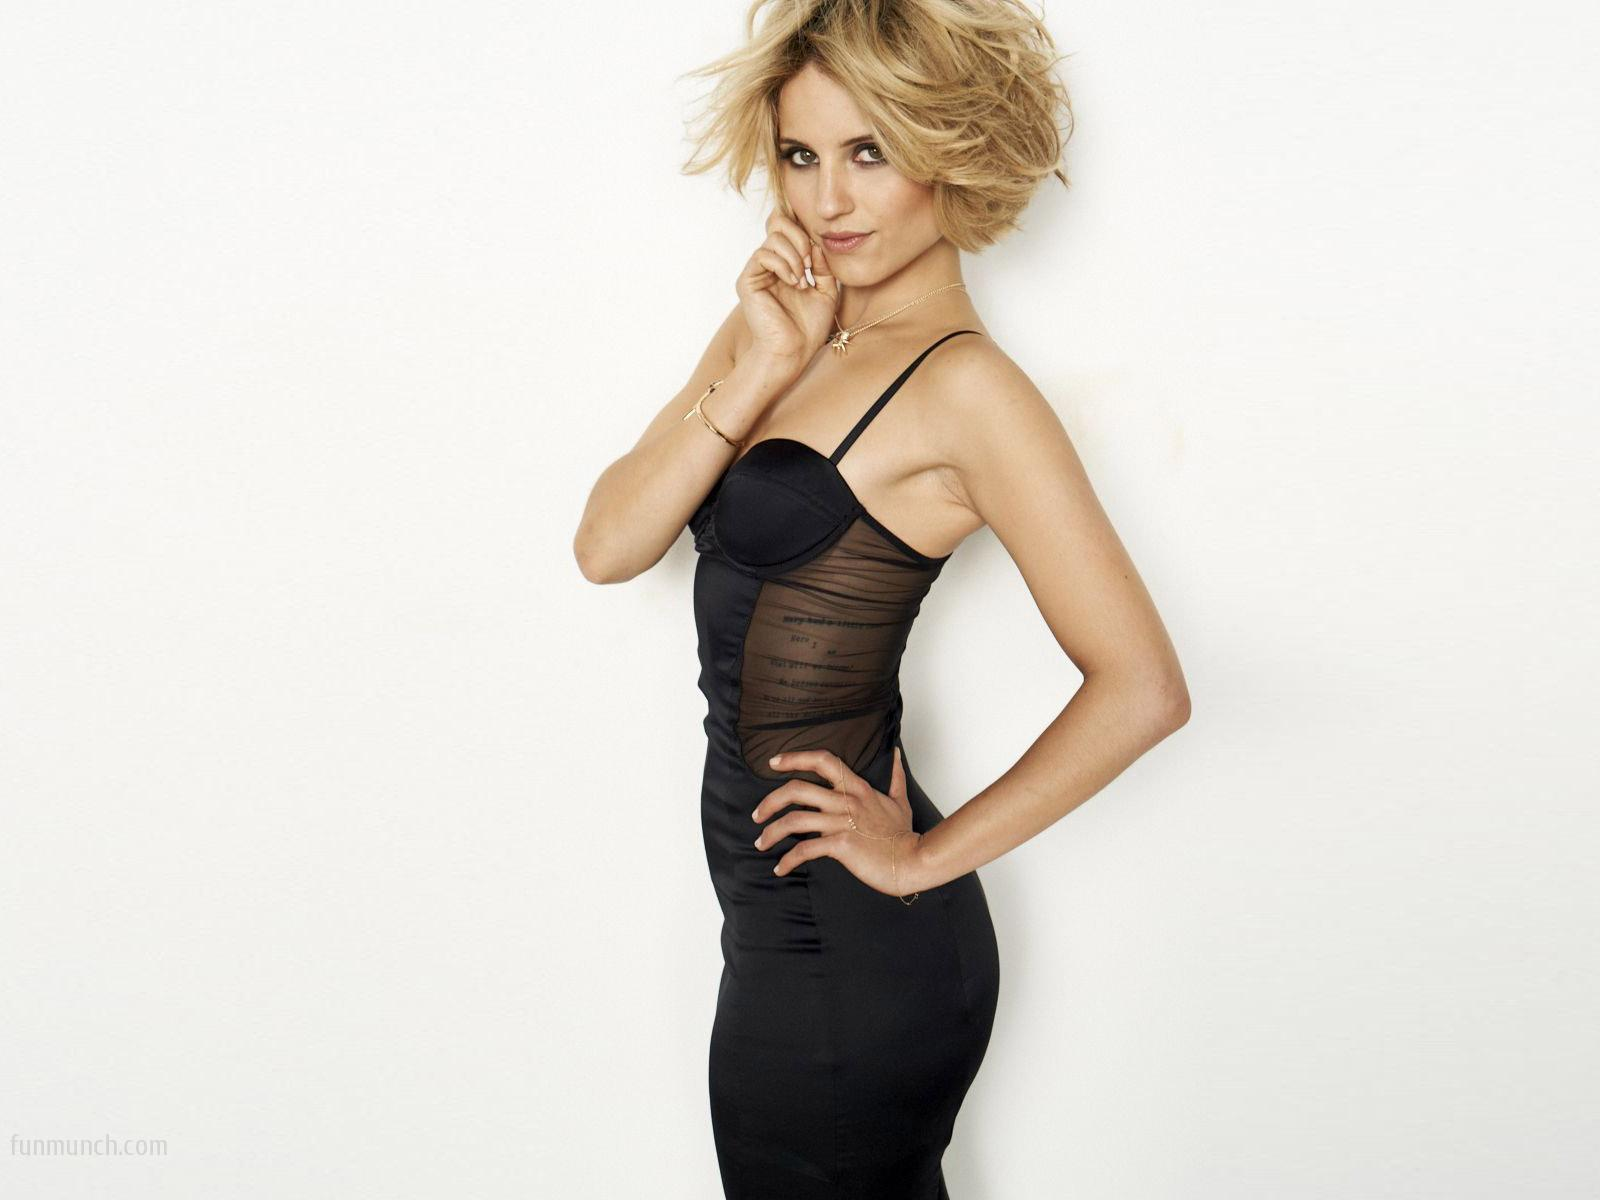 Glee images Dianna Agron wallpaper and background photos